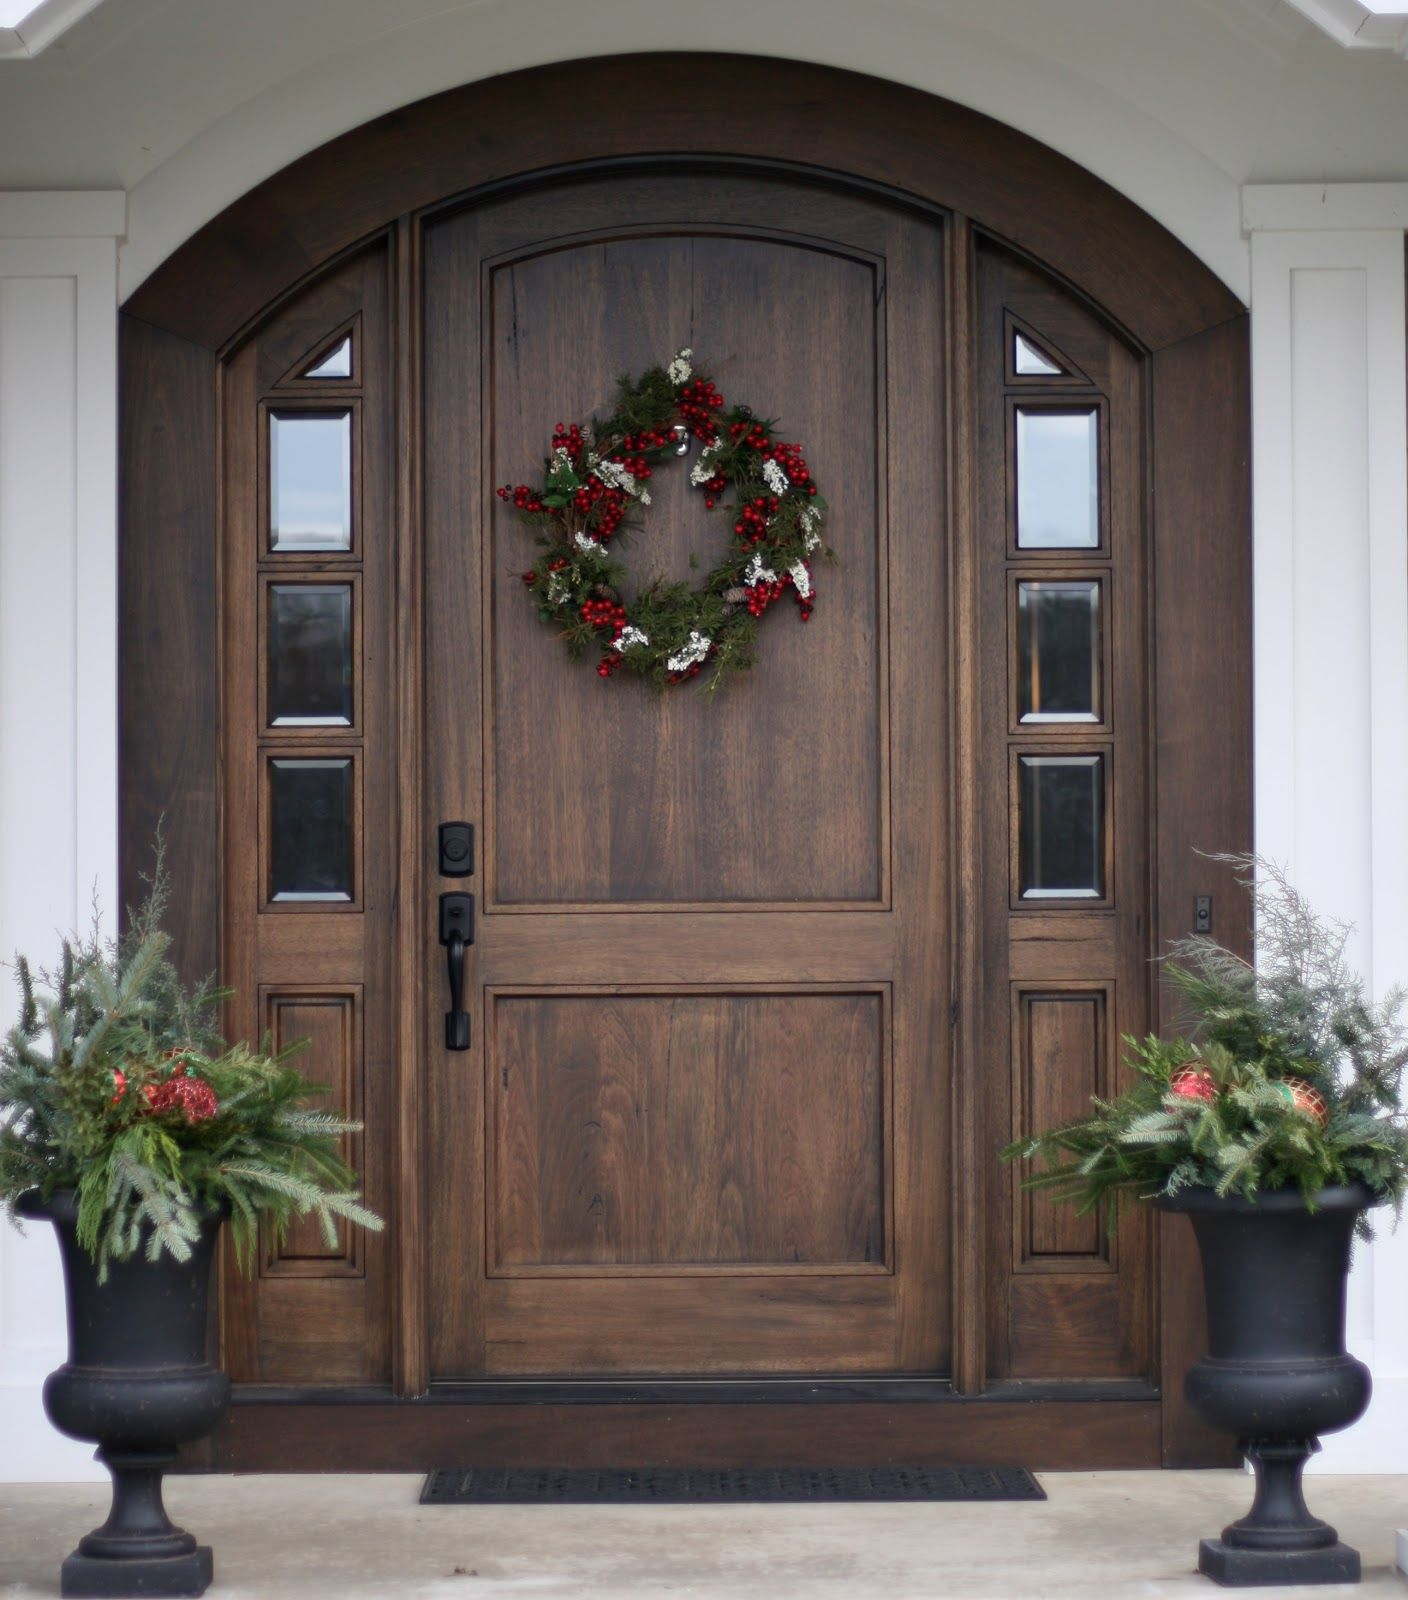 Front door. One day I will have a house that will allow me to have a front door like this. & Front door. One day I will have a house that will allow me to have a ...